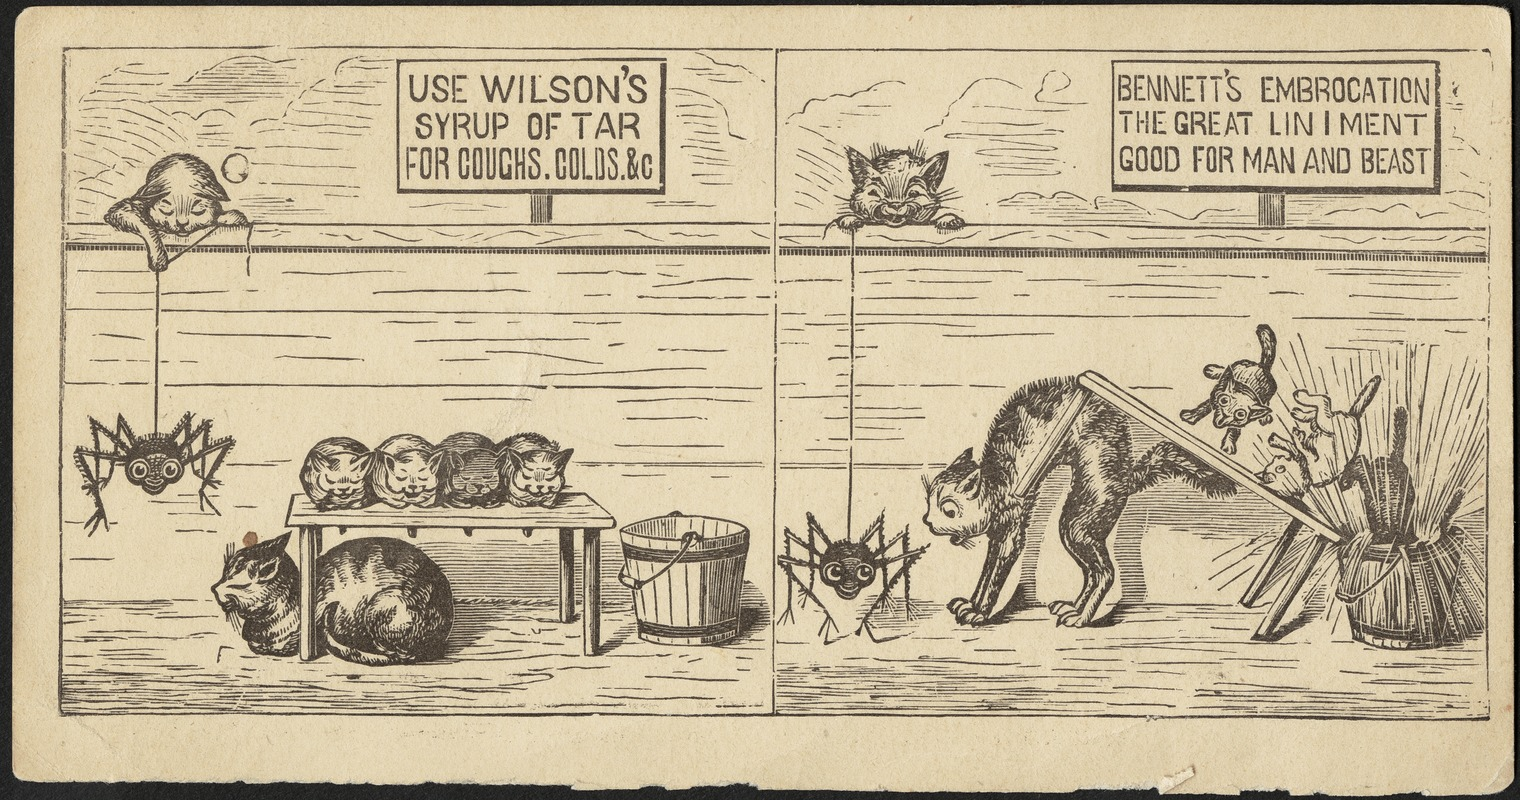 Use Wilson's Syrup of Tar for coughs, colds &c. Bennett's Embrocation the great liniment good for man and beast